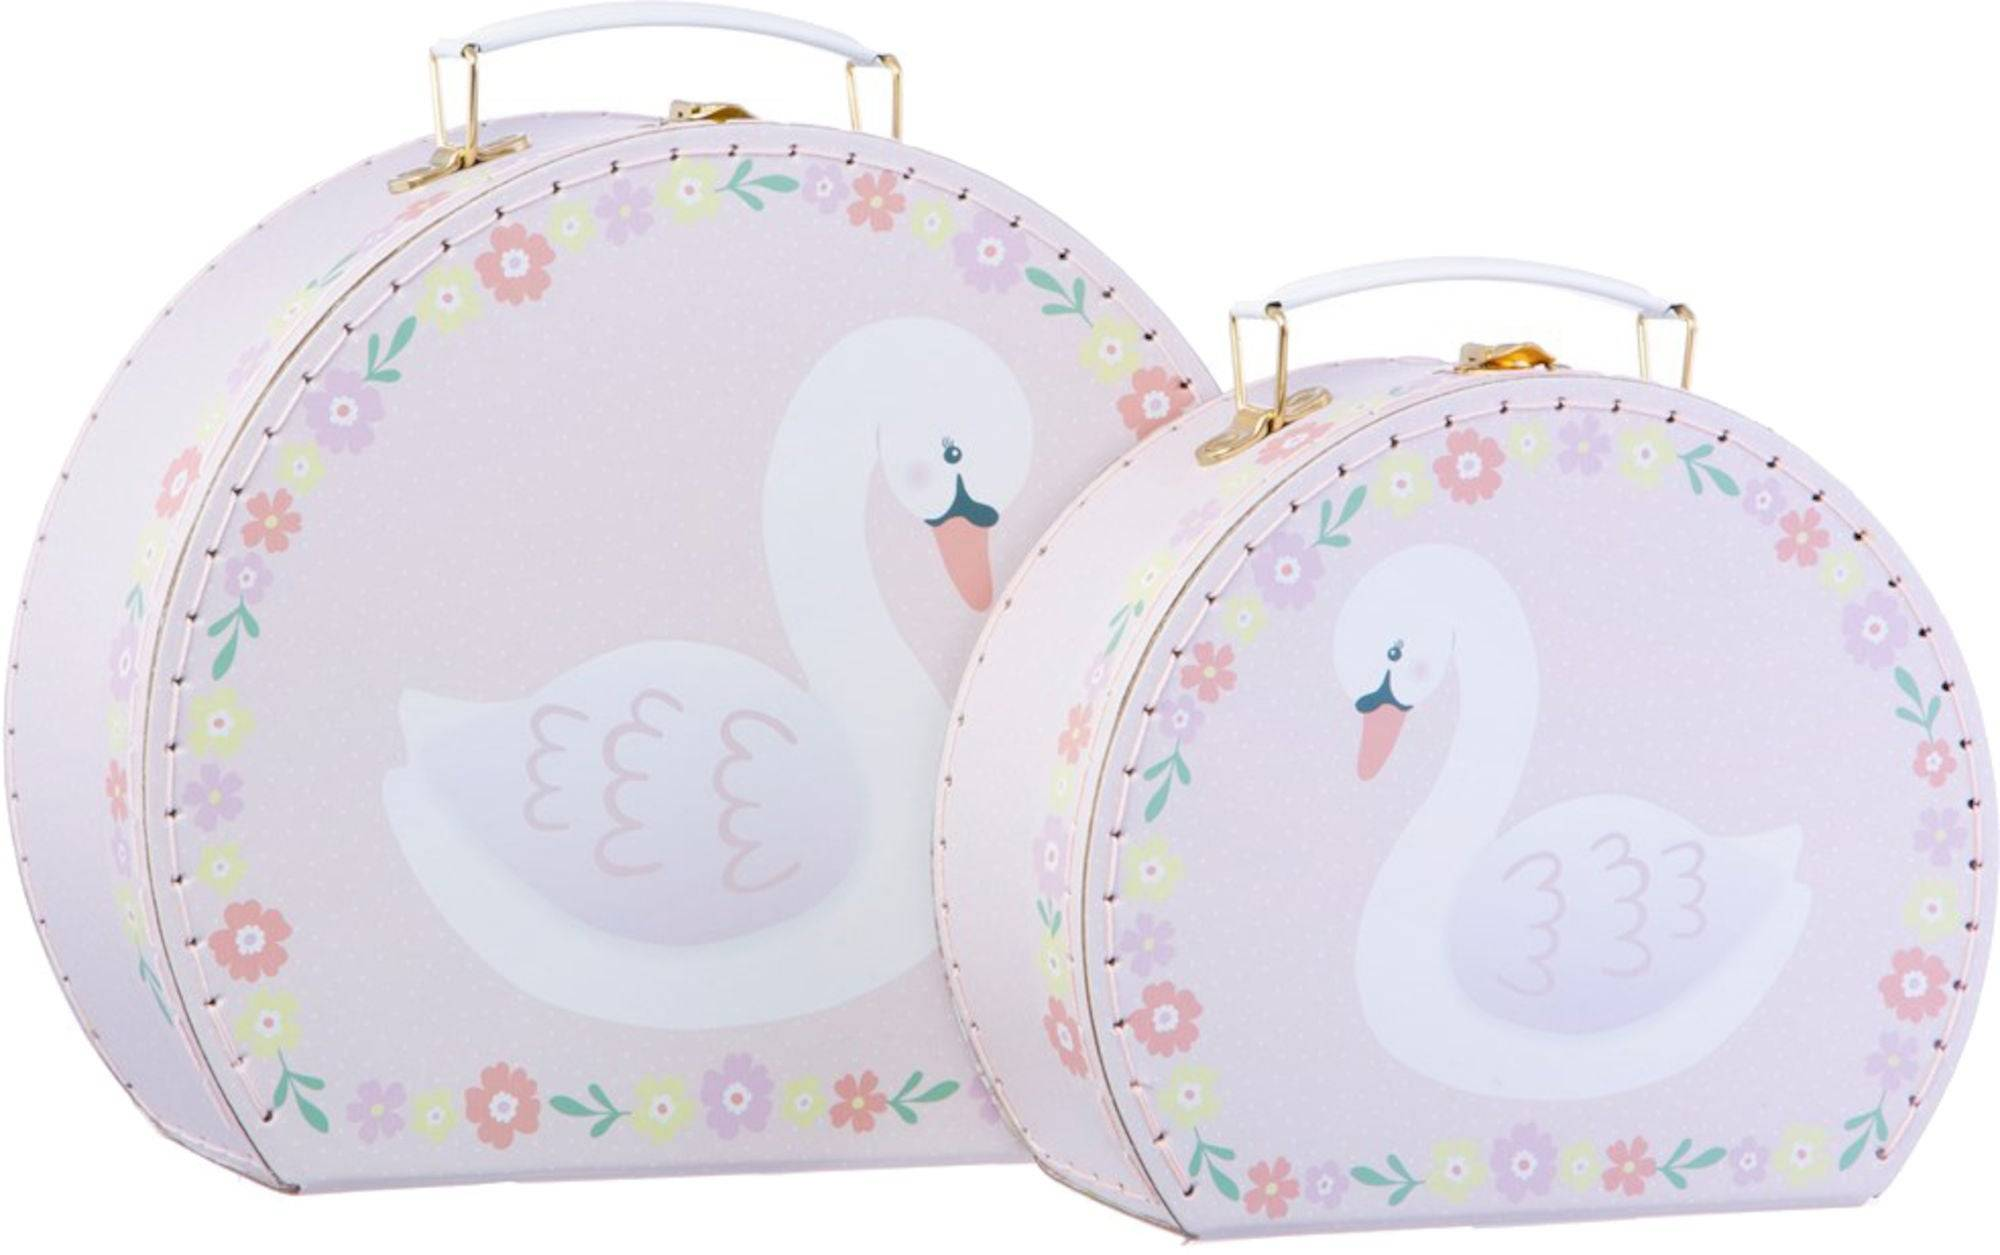 Sass & Belle Pappkoffert Pink Floral Suitcases 2-pack